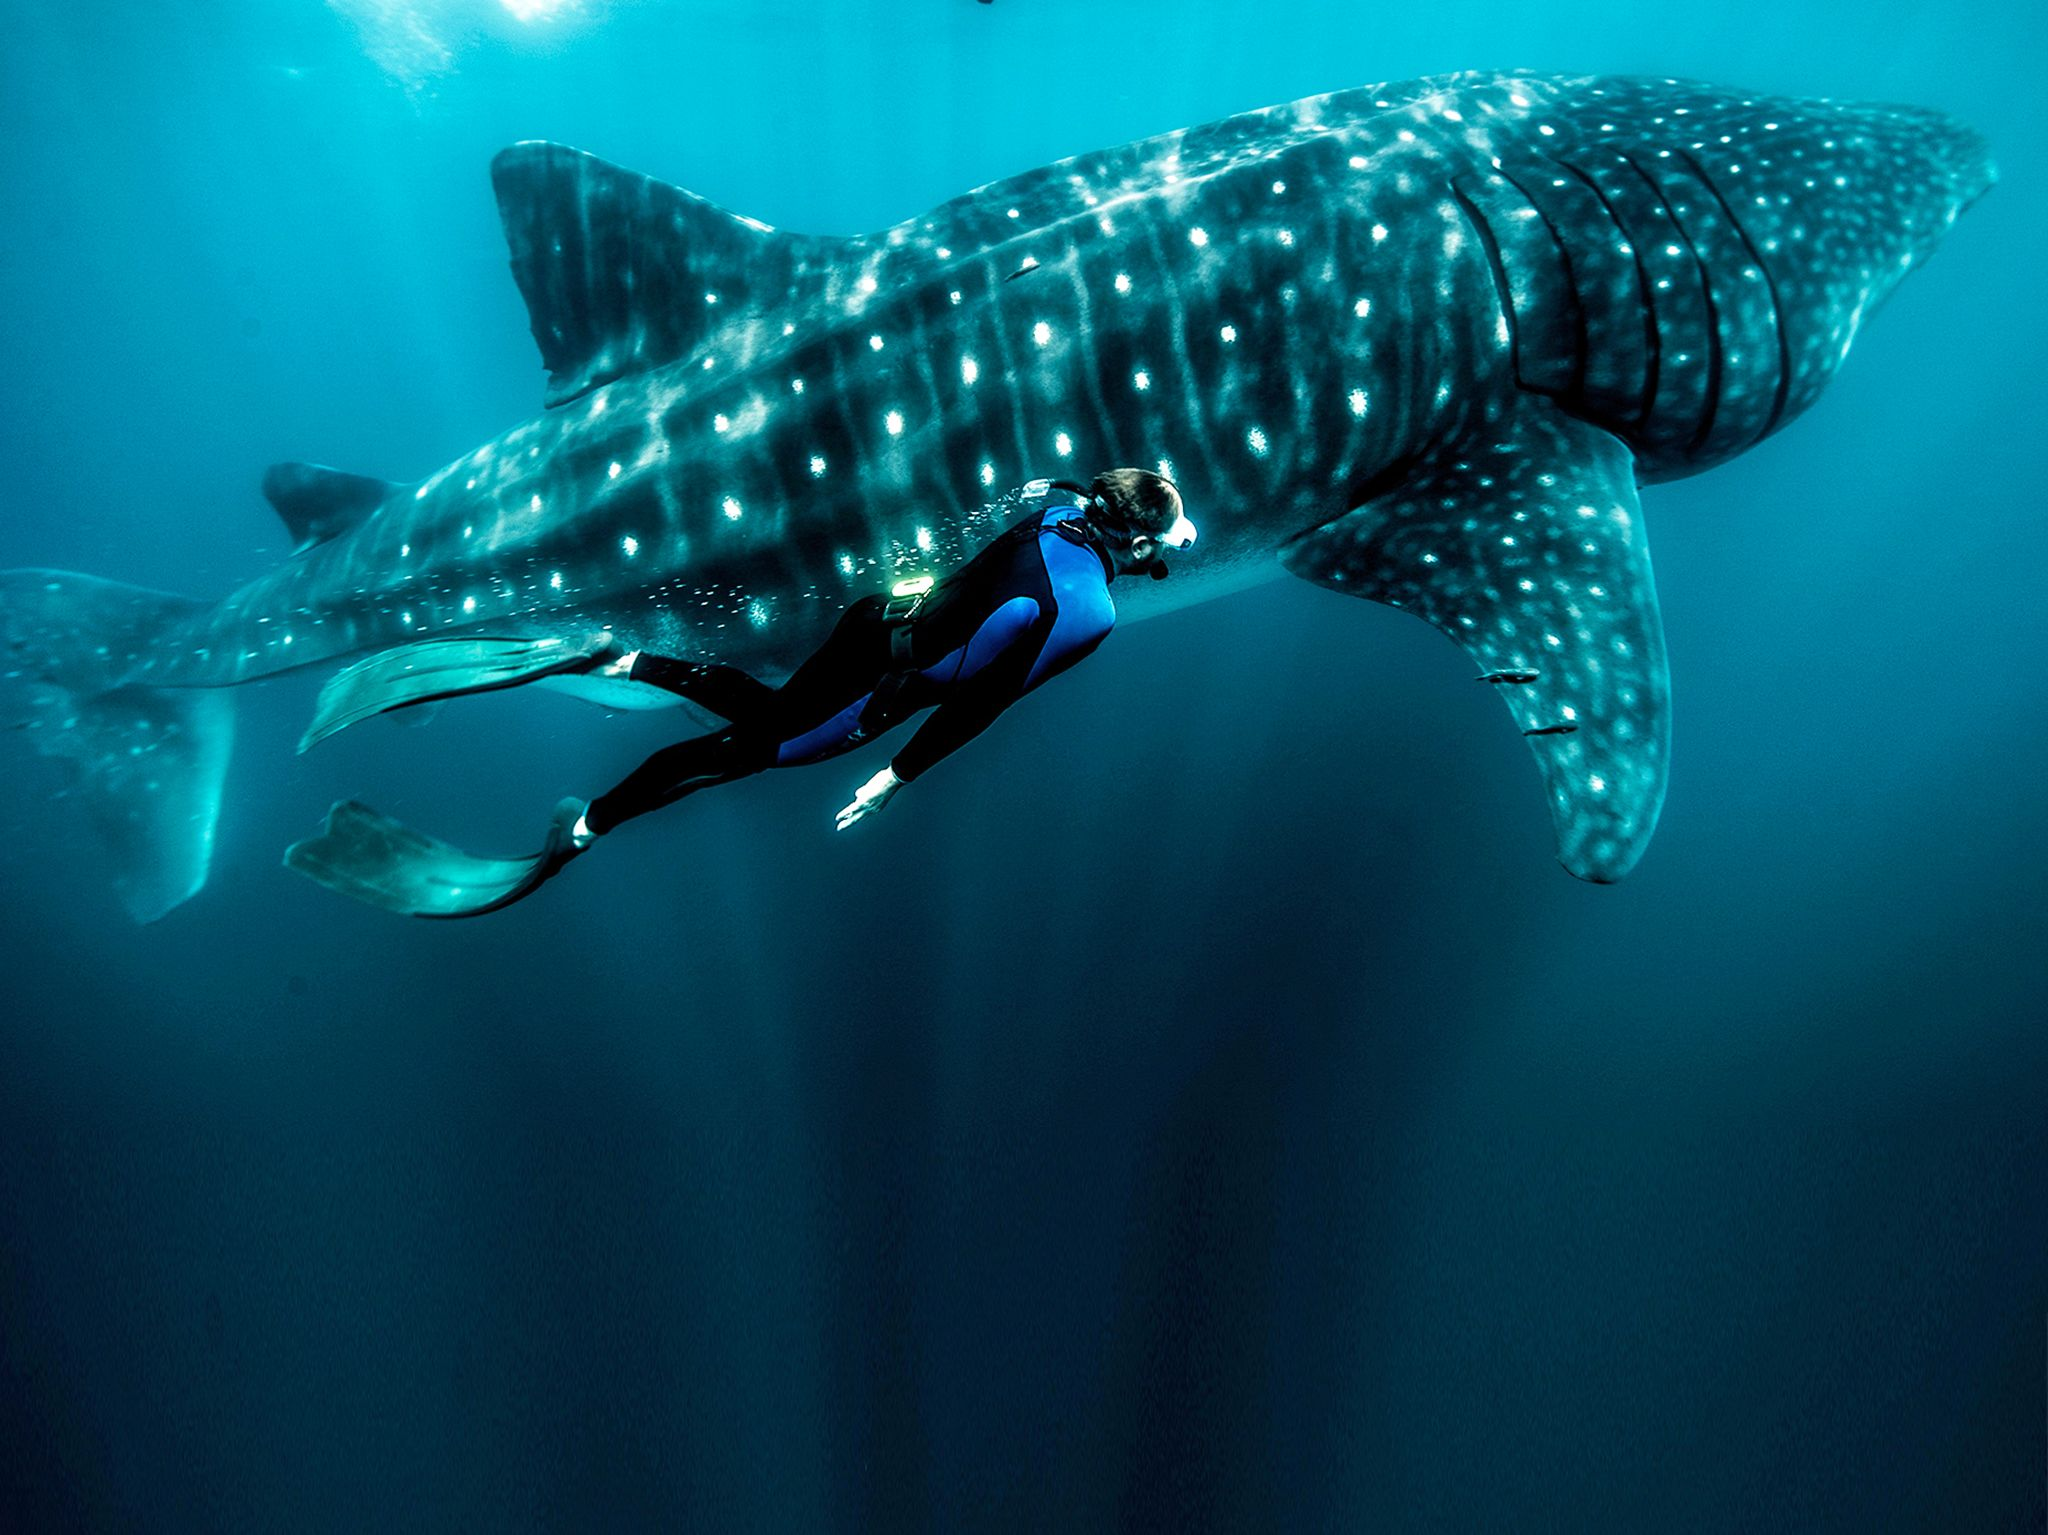 Zeb Hogan free dives alongside an enormous 30ft Whale shark. This image is from Zeb's Big Fish:... [Photo of the day - October 2020]